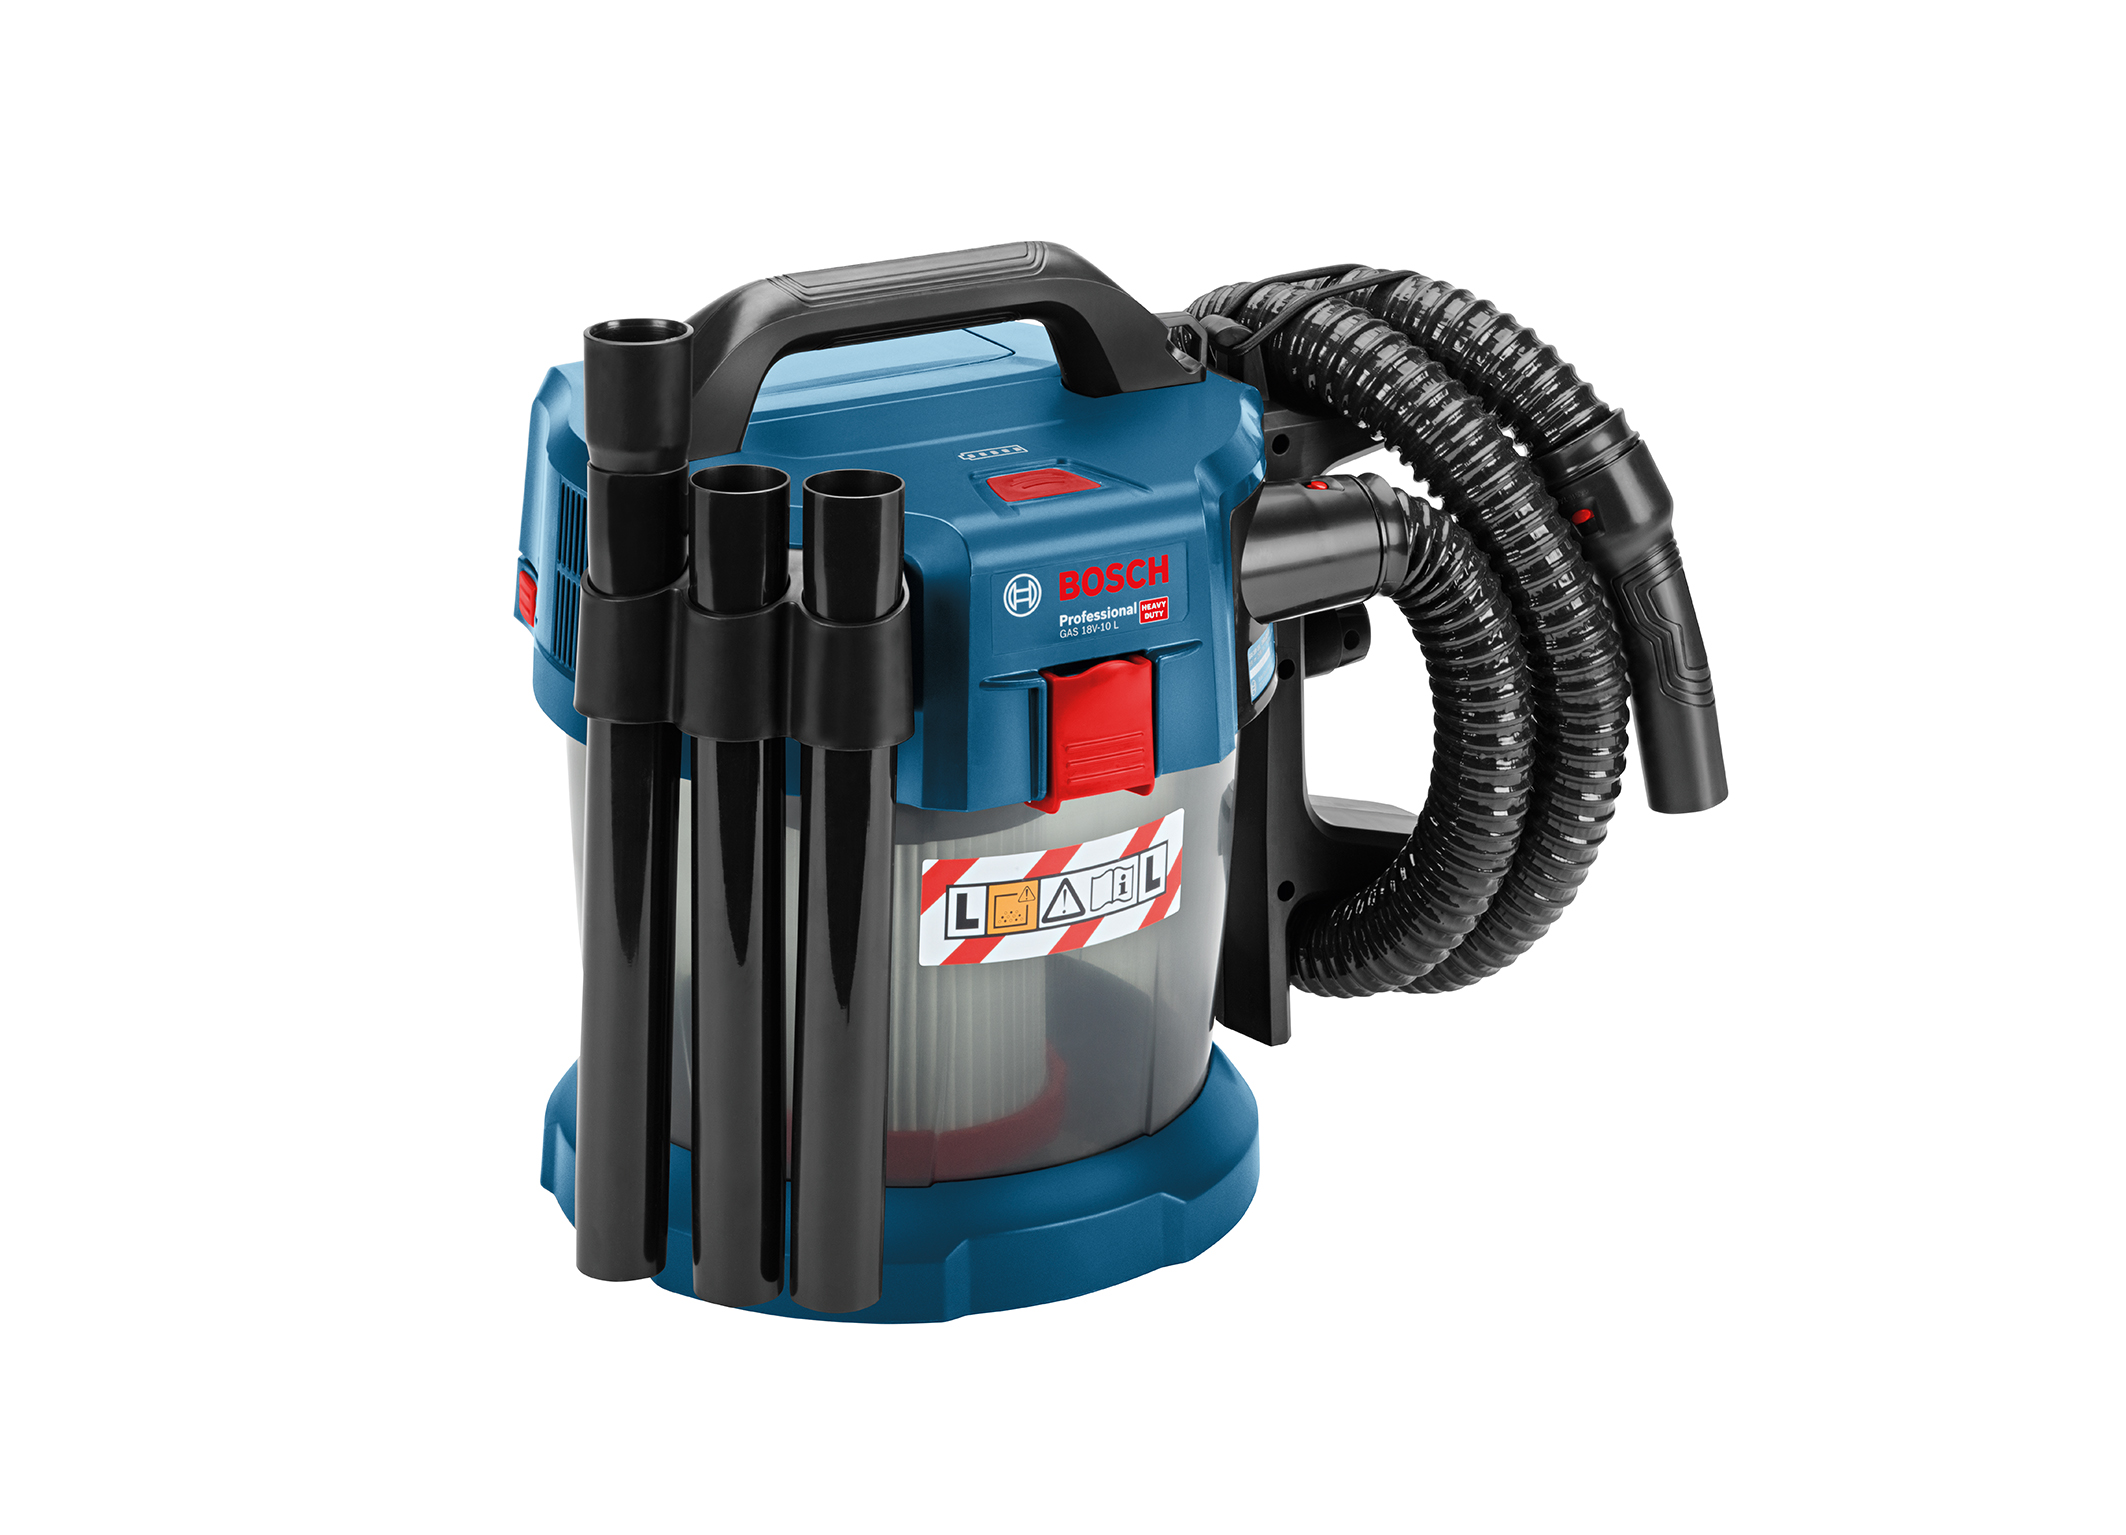 Great whirl – little dust thanks to rotational air flow: the GAS 18V-10 L Professional wet/dry extractor from Bosch for professionals